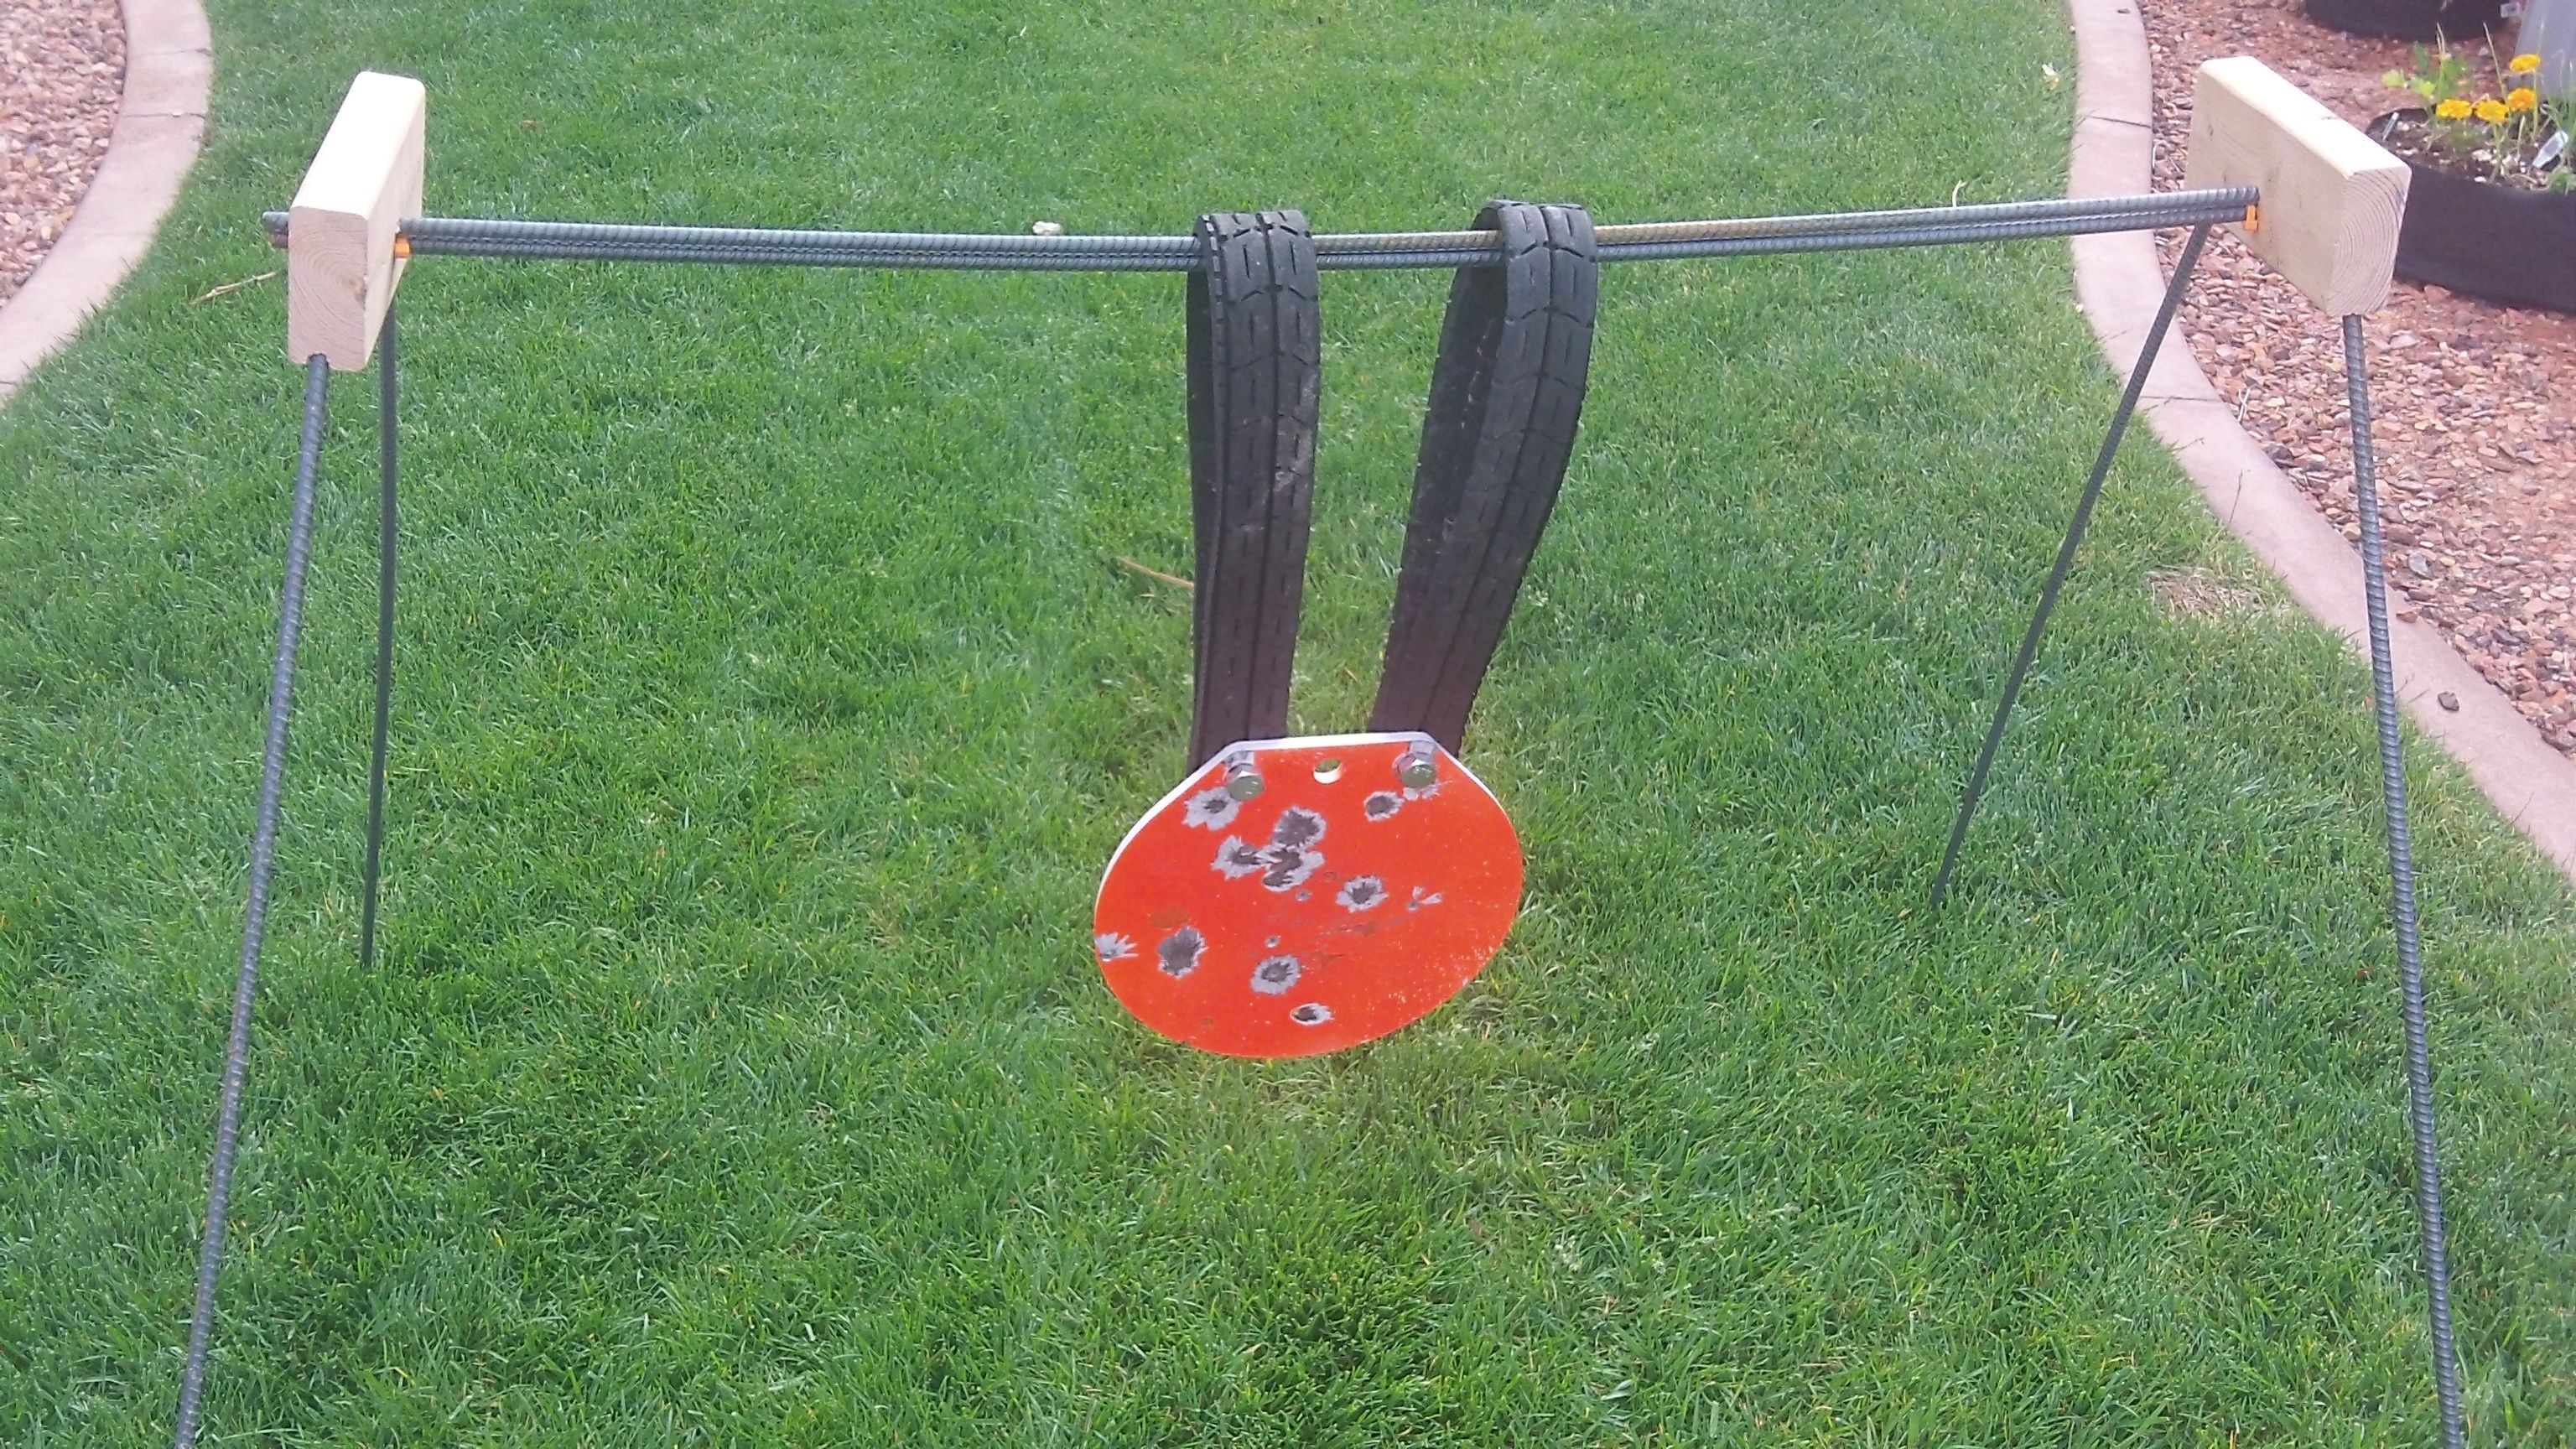 Steel Gong Target Stand Brackets Pictures To Pin On